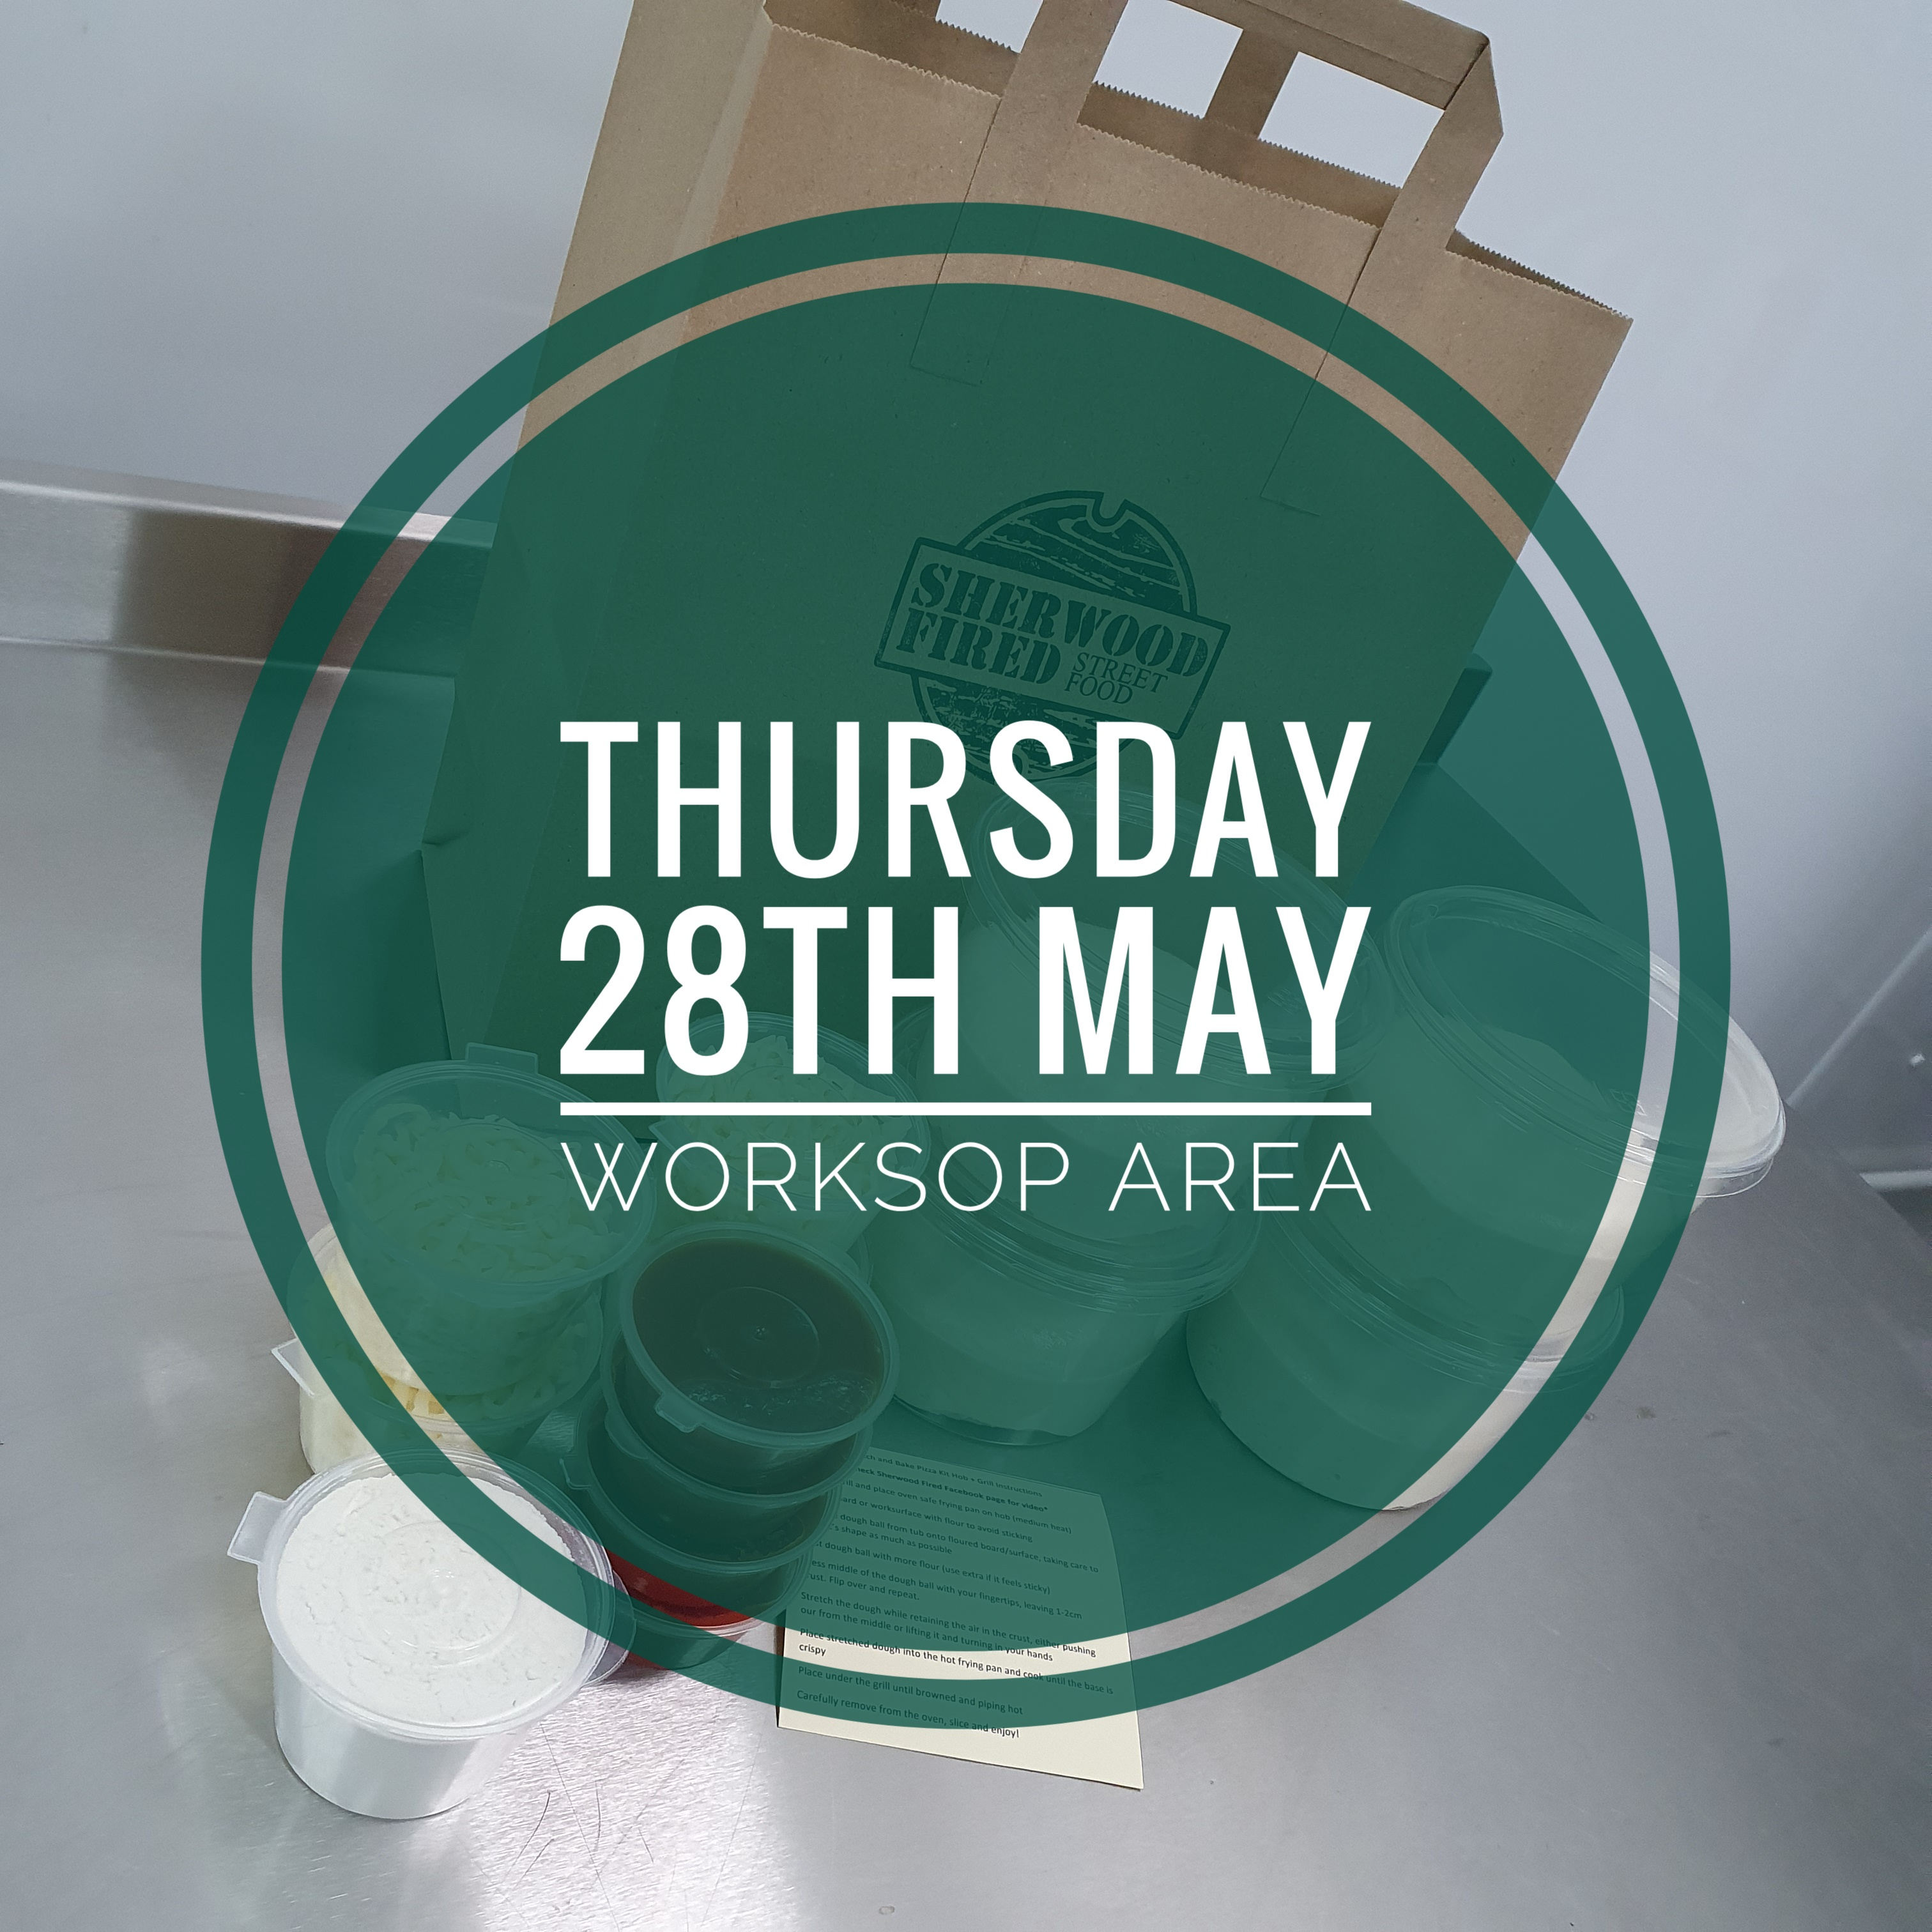 Sourdough Stretch and Bake Pizza Kit (THURSDAY 28th MAY WORKSOP AREA)